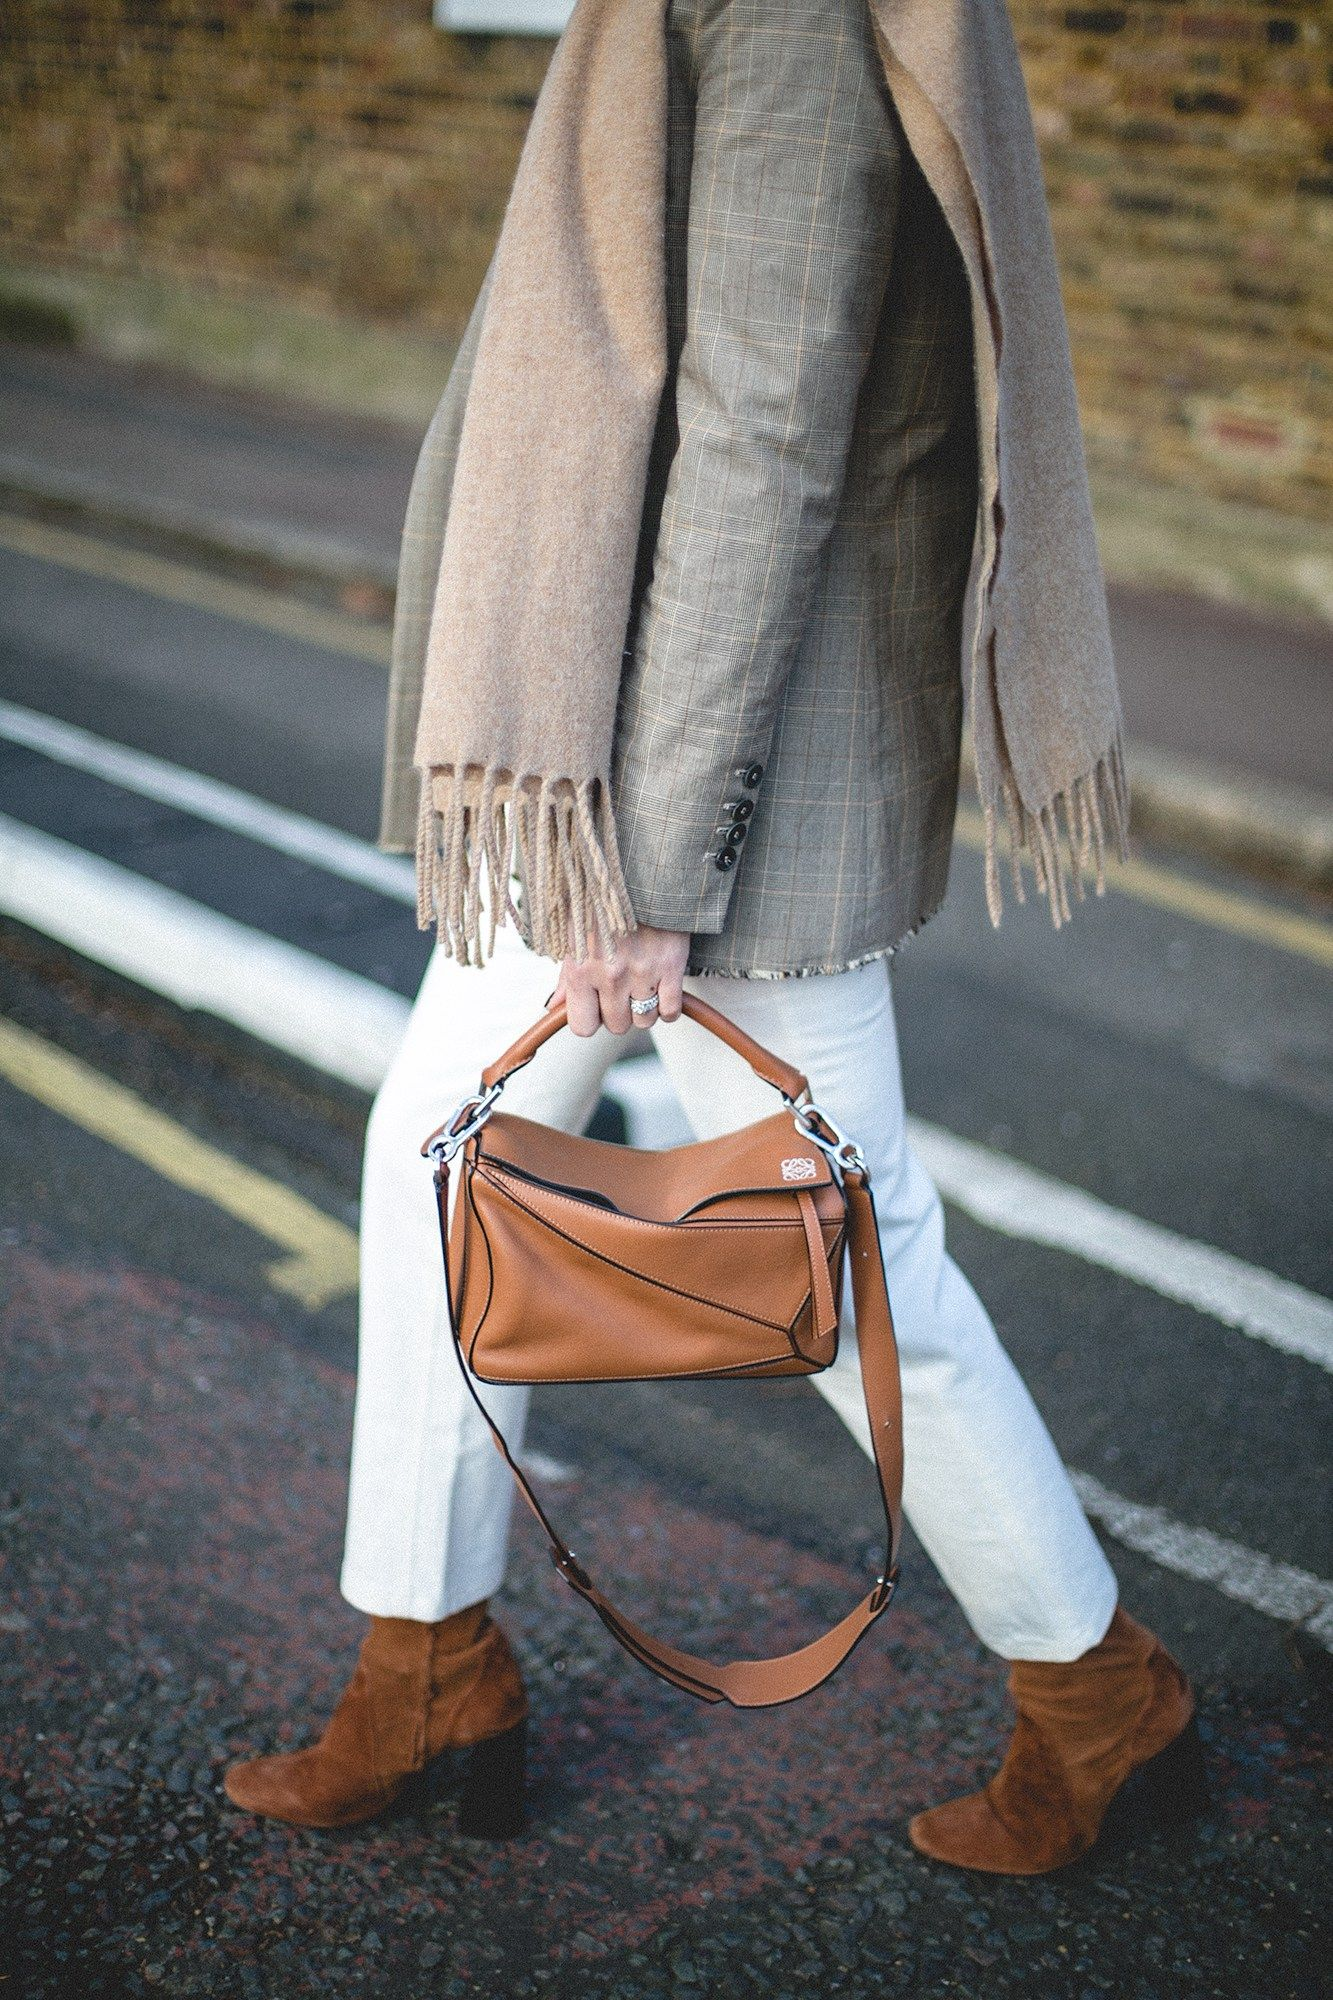 7b059f0bcc42 camel scarf, tan leather small size Loewe puzzle bag | Style in 2019 ...